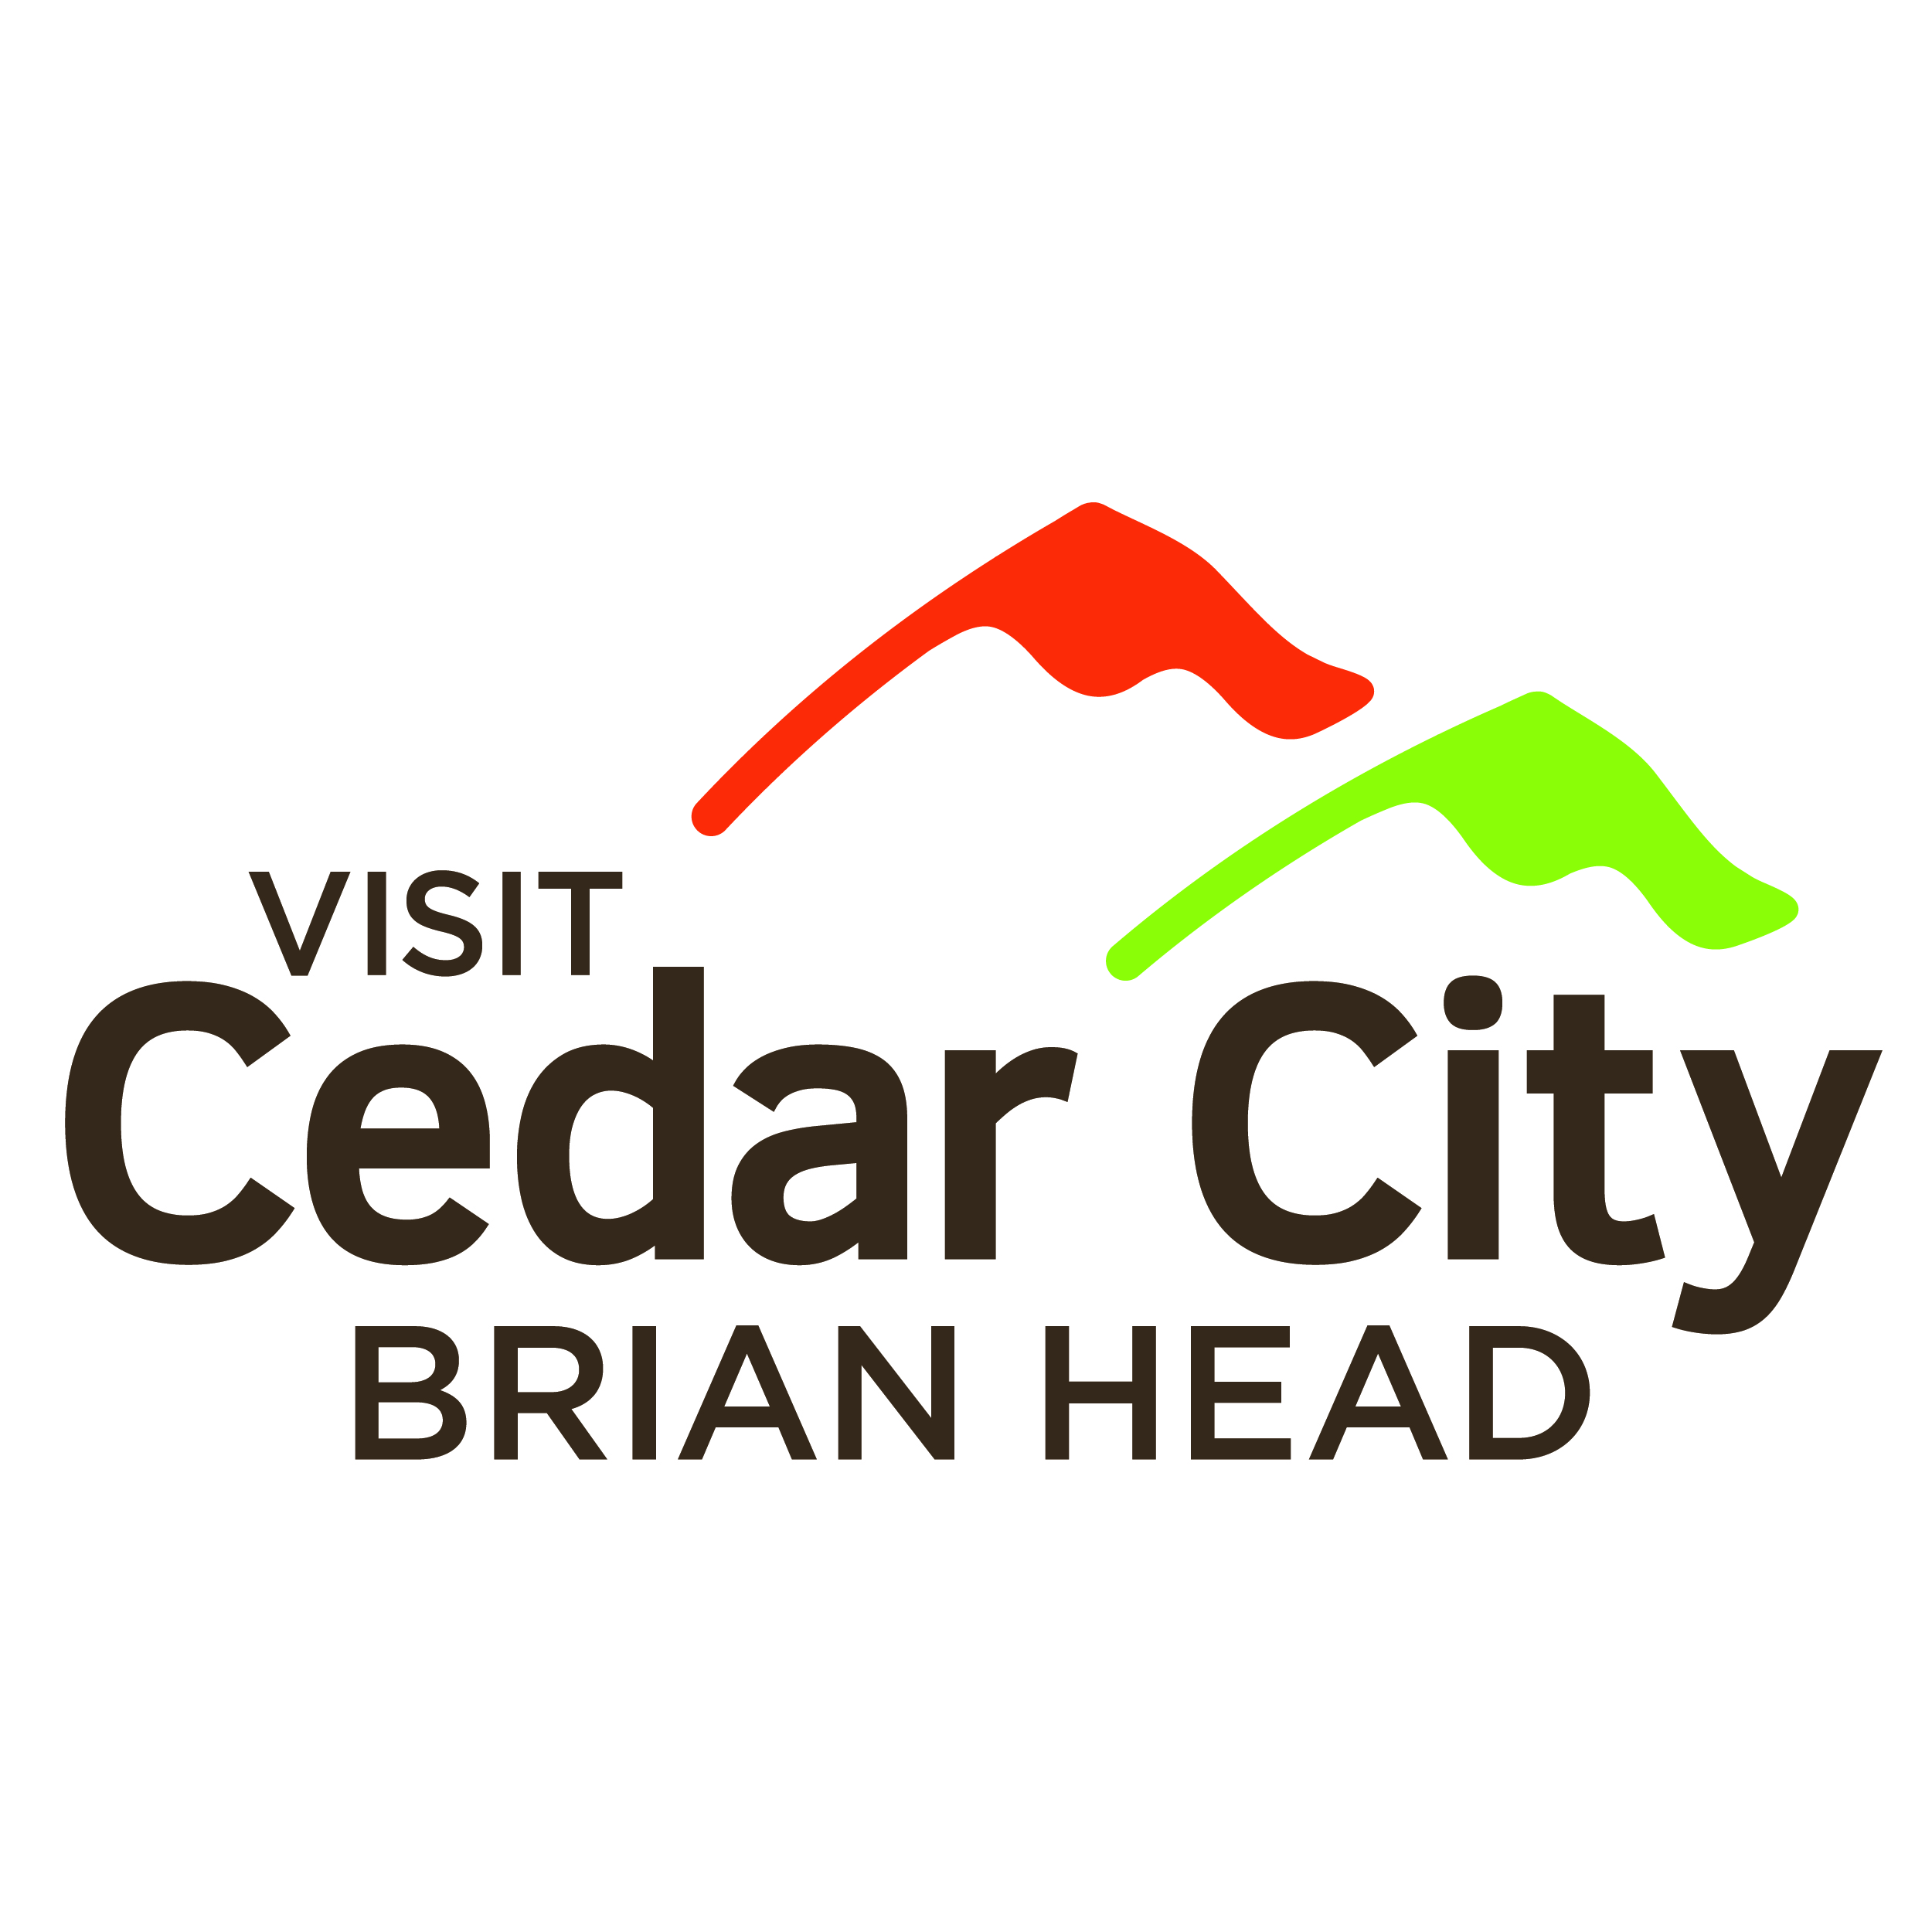 Visit Cedar City Logo_3 color - 300 dpi CMYK.jpg